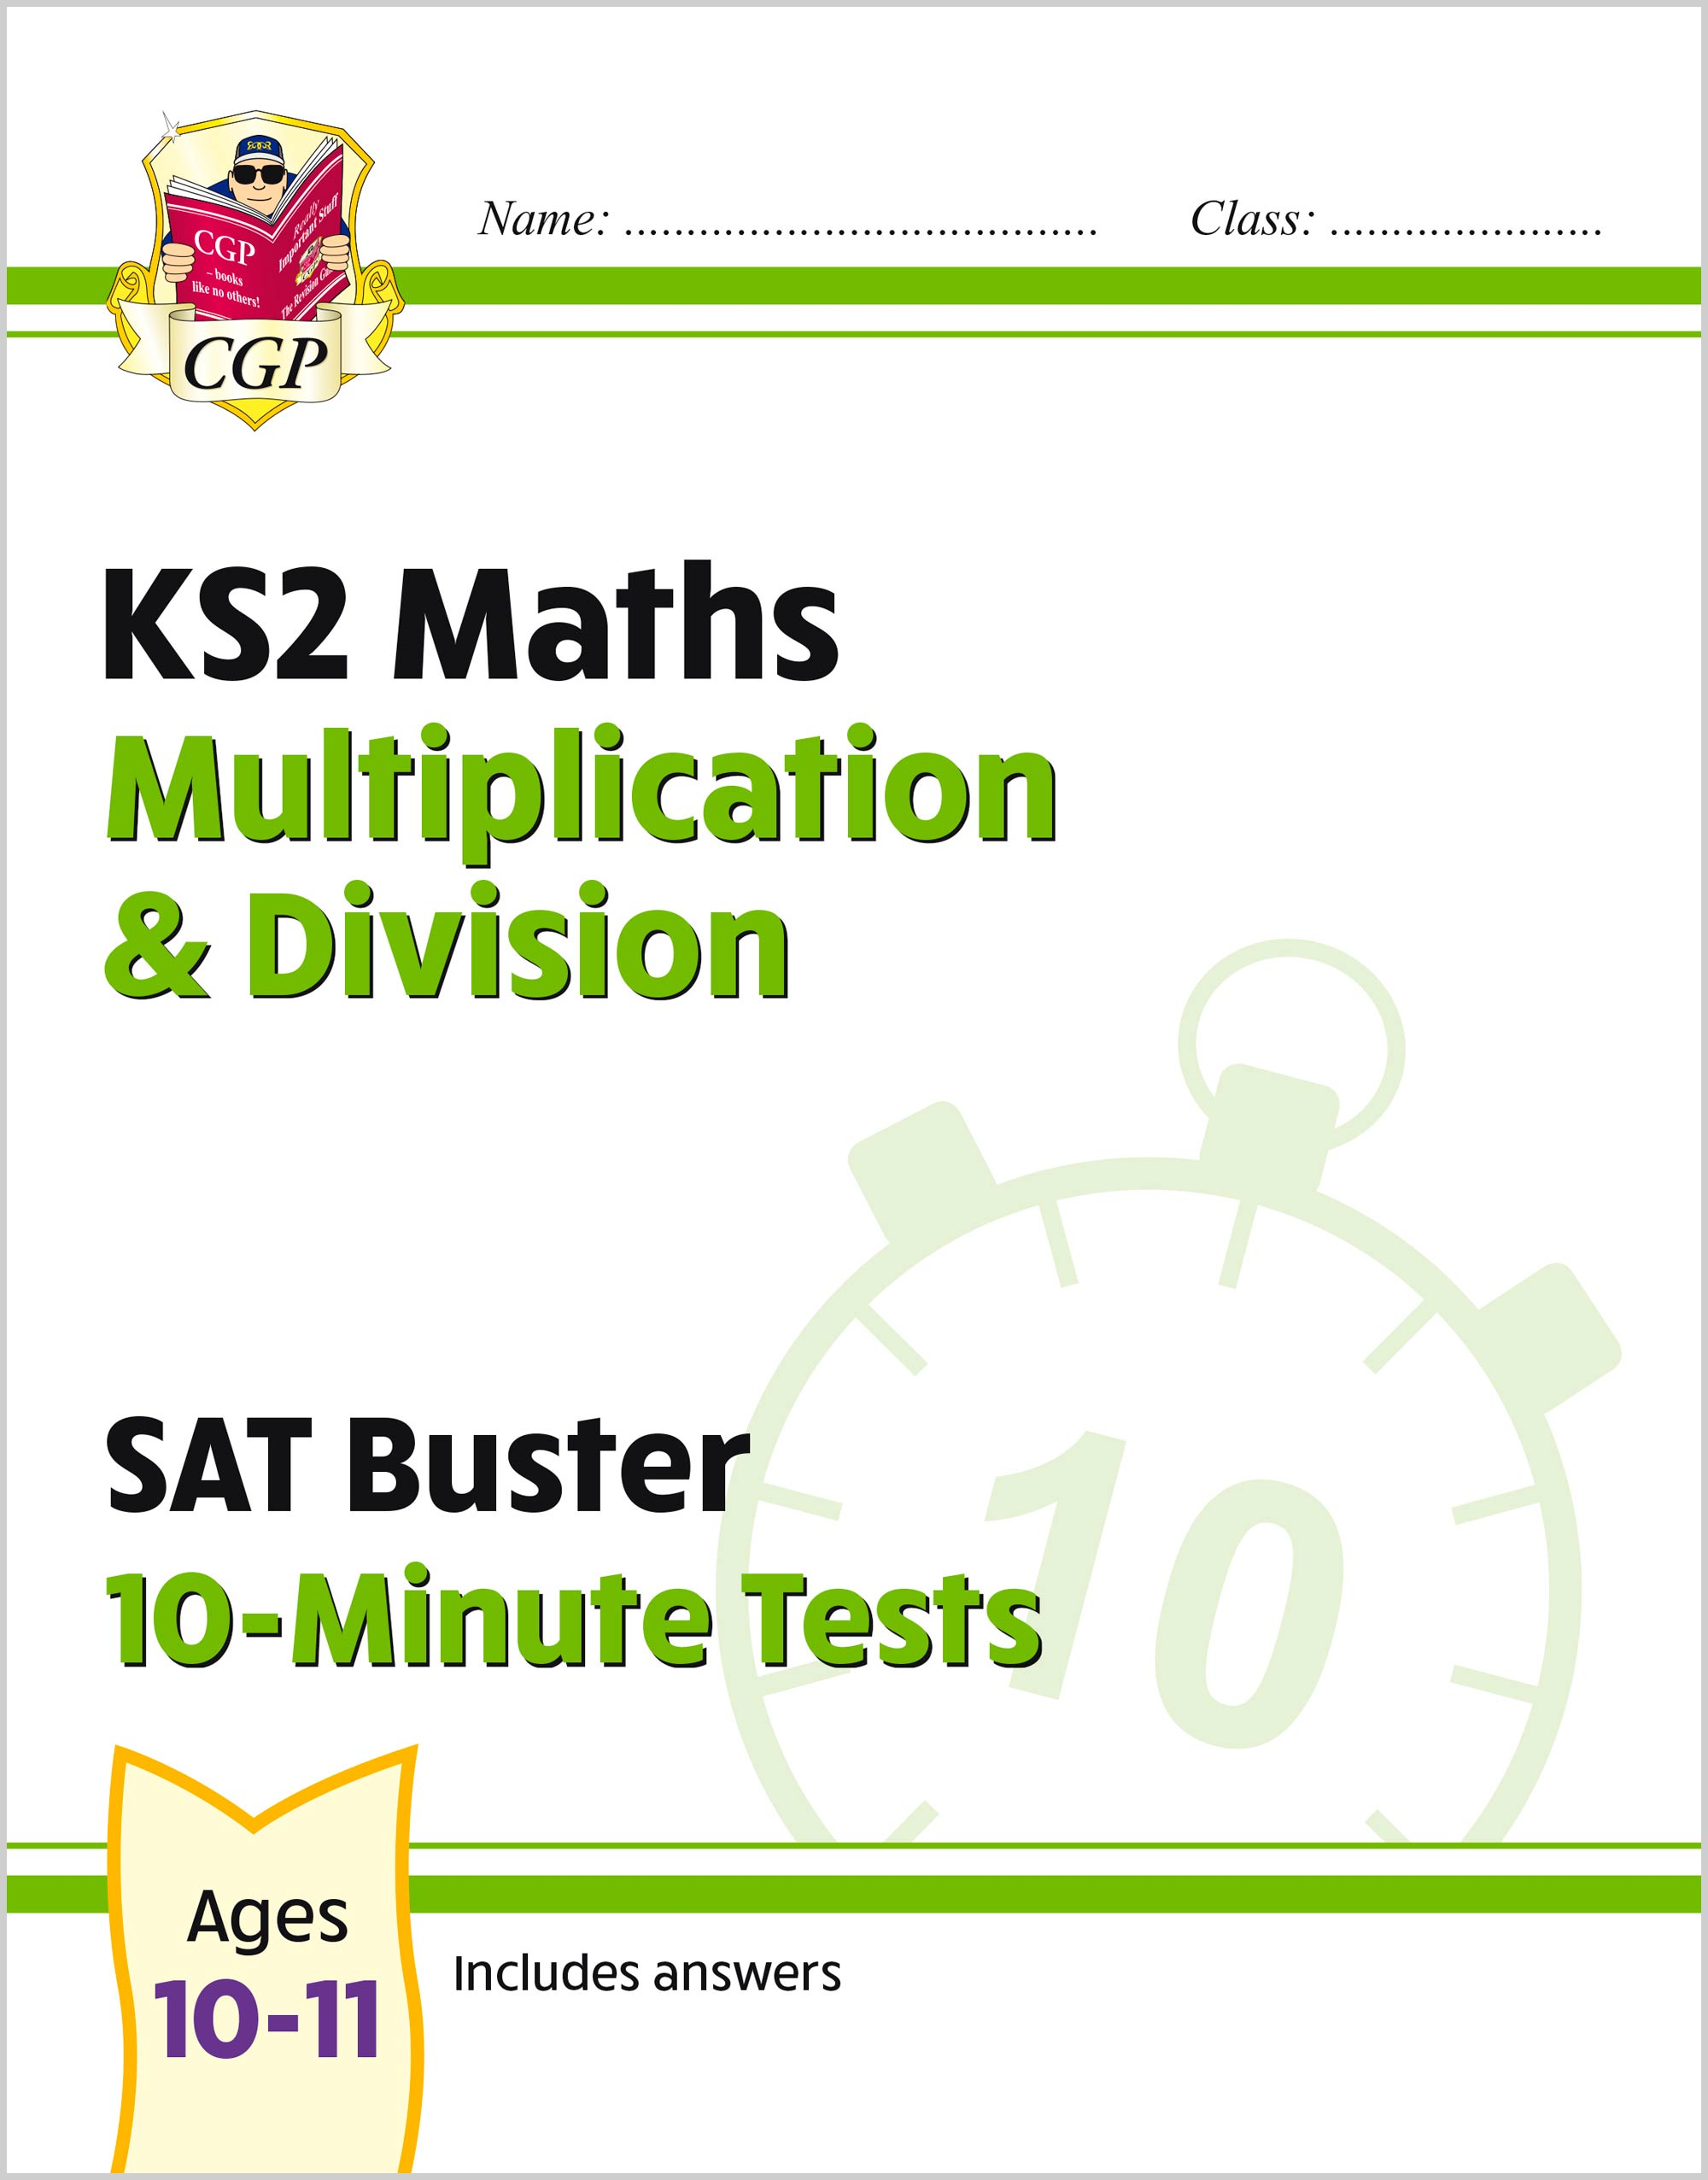 MMDXP21 - New KS2 Maths SAT Buster 10-Minute Tests - Multiplication & Division (for the 2020 tests)